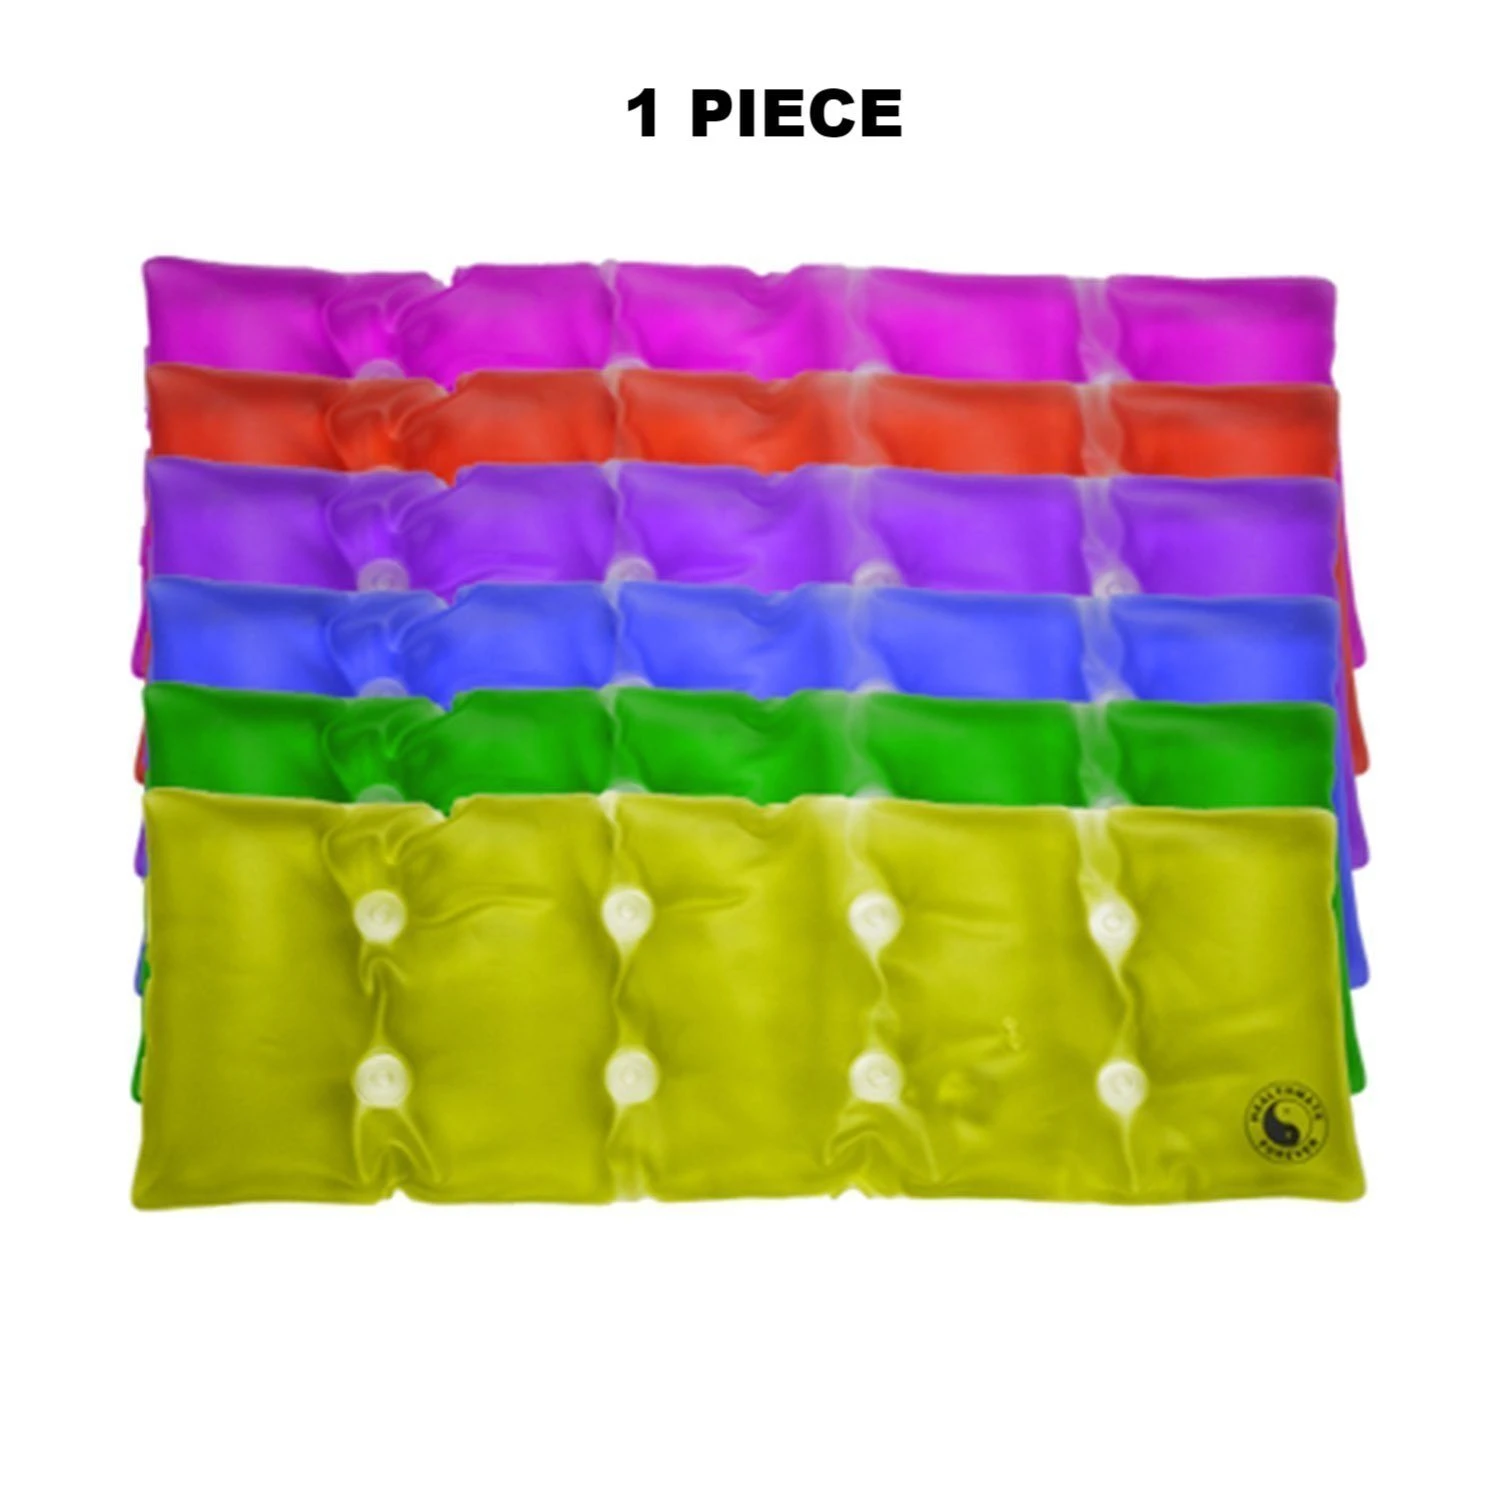 Wholesale: Reusable Instant Heat Pad Lower Back Warmer (12 Pcs / Box) - HealthmateForever.com